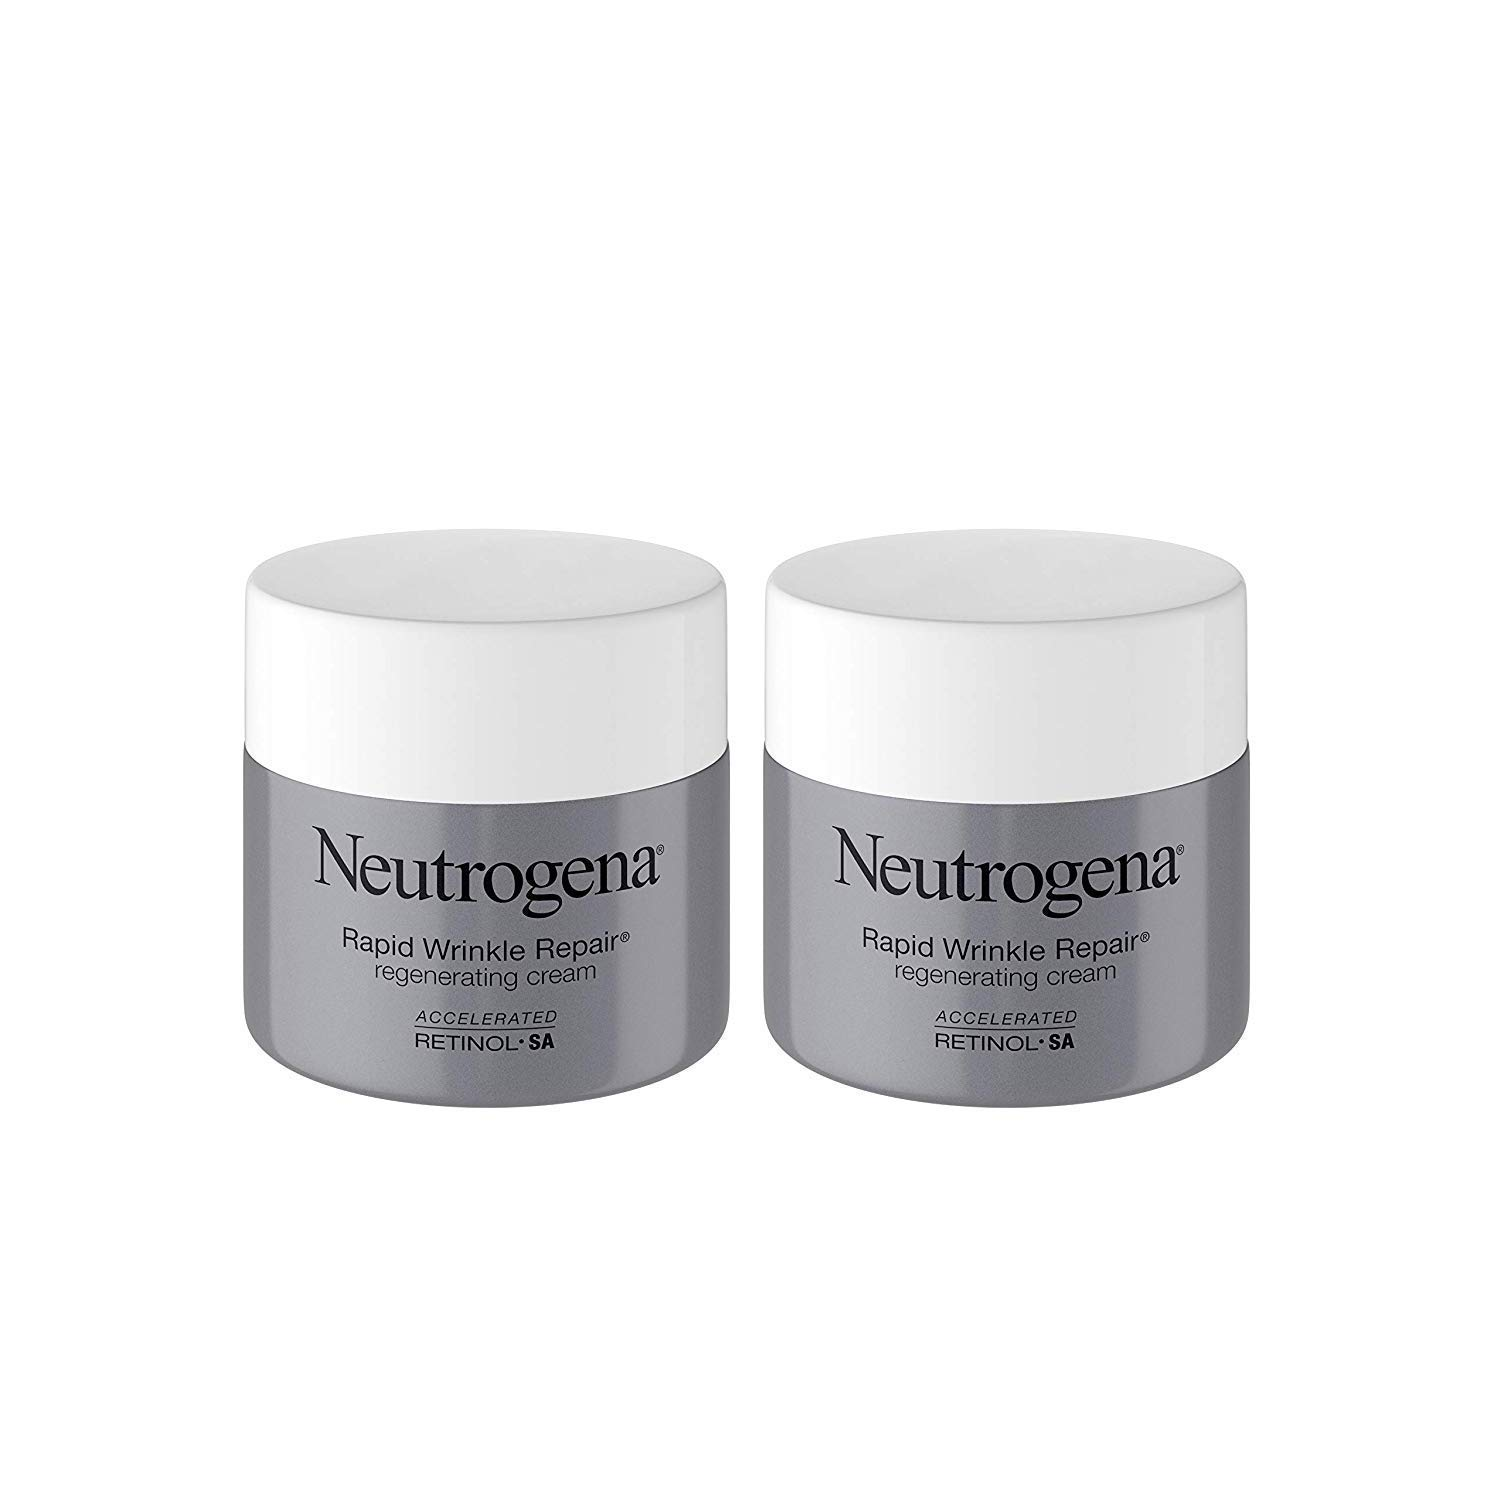 Neutrogena Rapid Wrinkle Repair Retinol Regenerating Face Cream & Hyaluronic Acid Anti Wrinkle Face Moisturizer 1.7 oz (2 Pack)